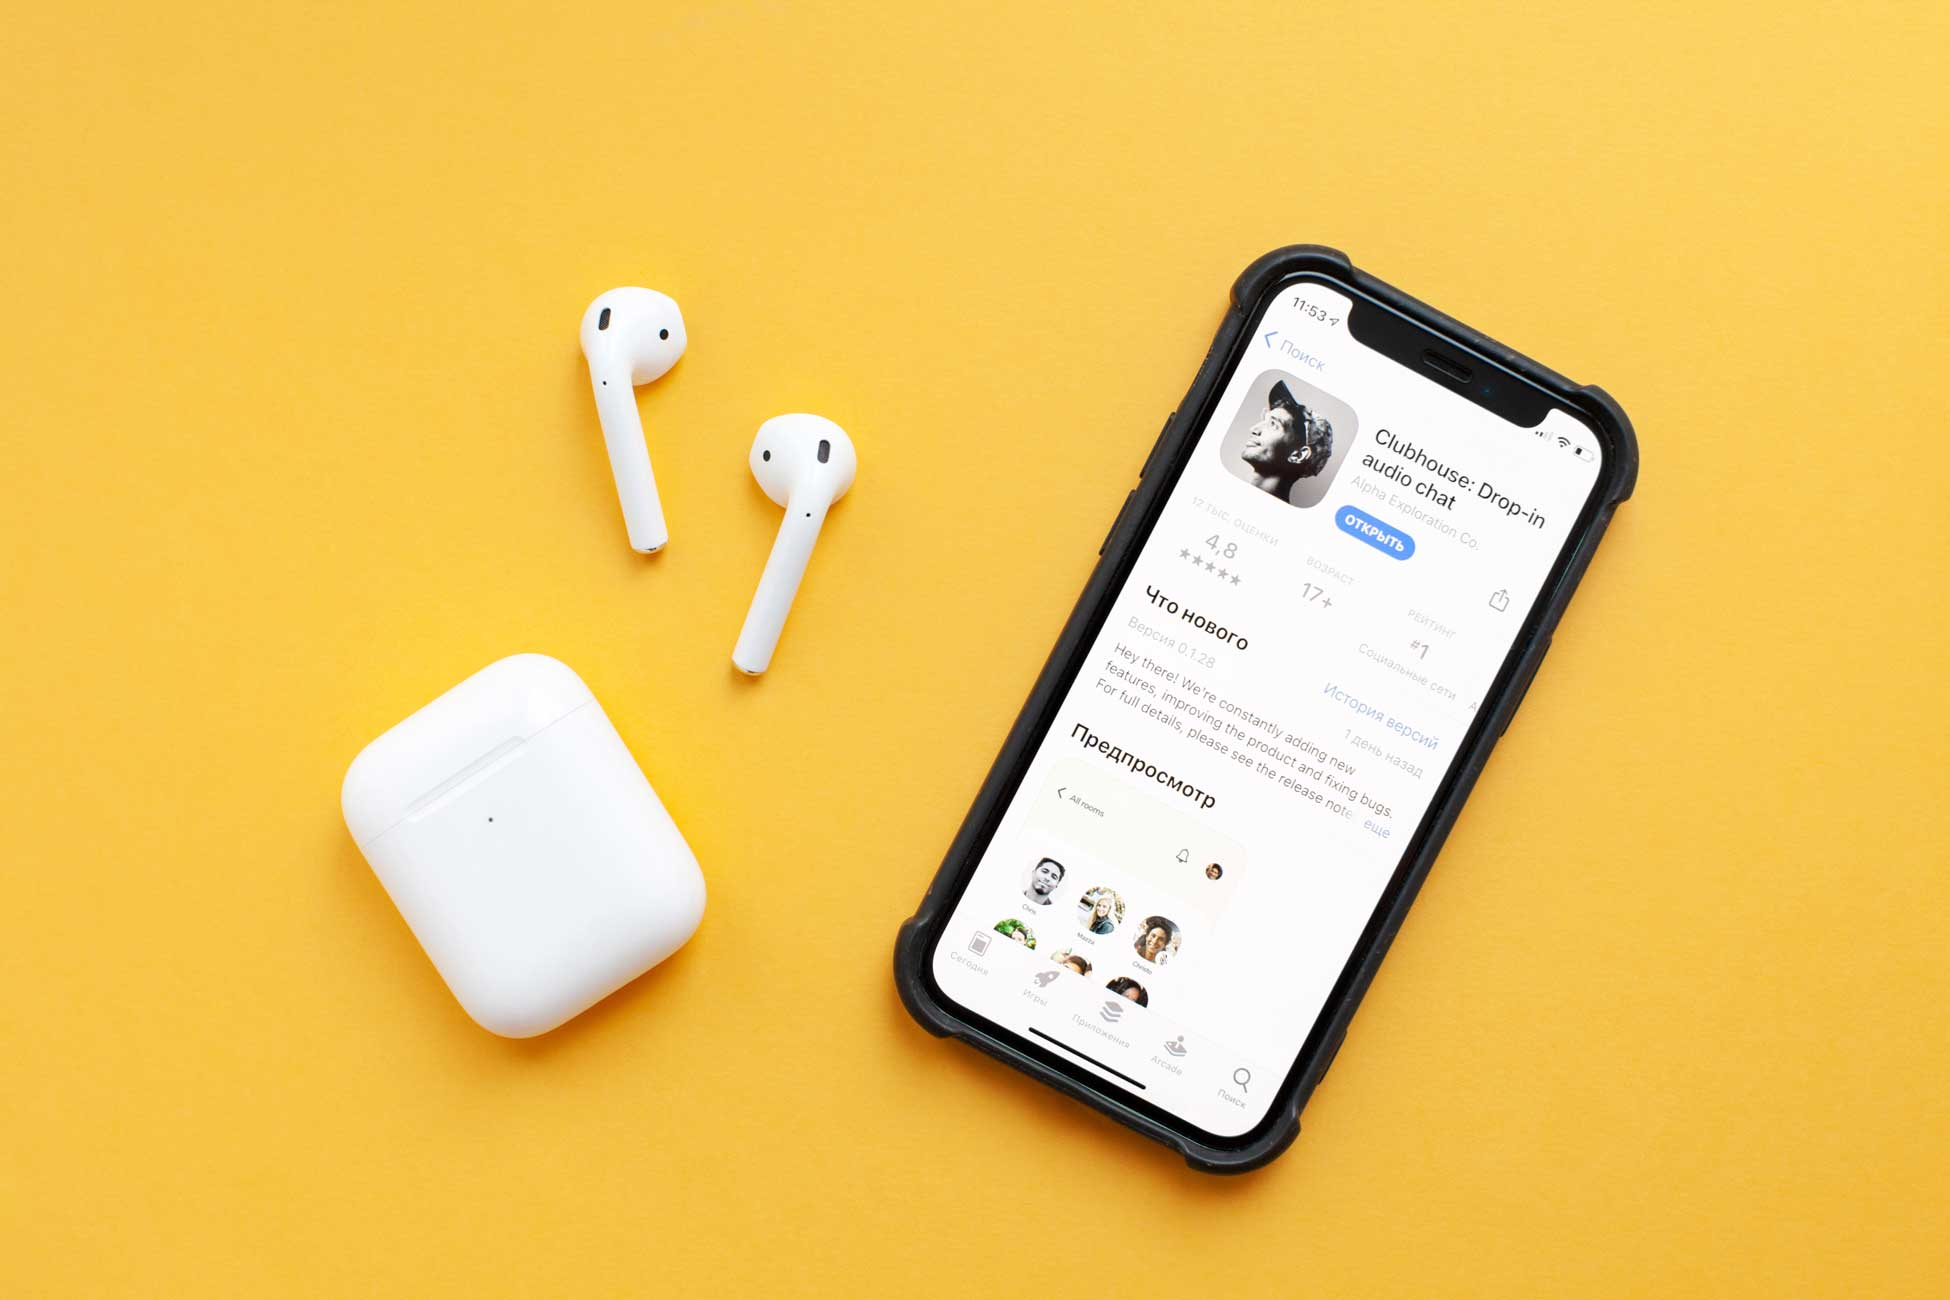 Clubhouse app on iPhone with headphones